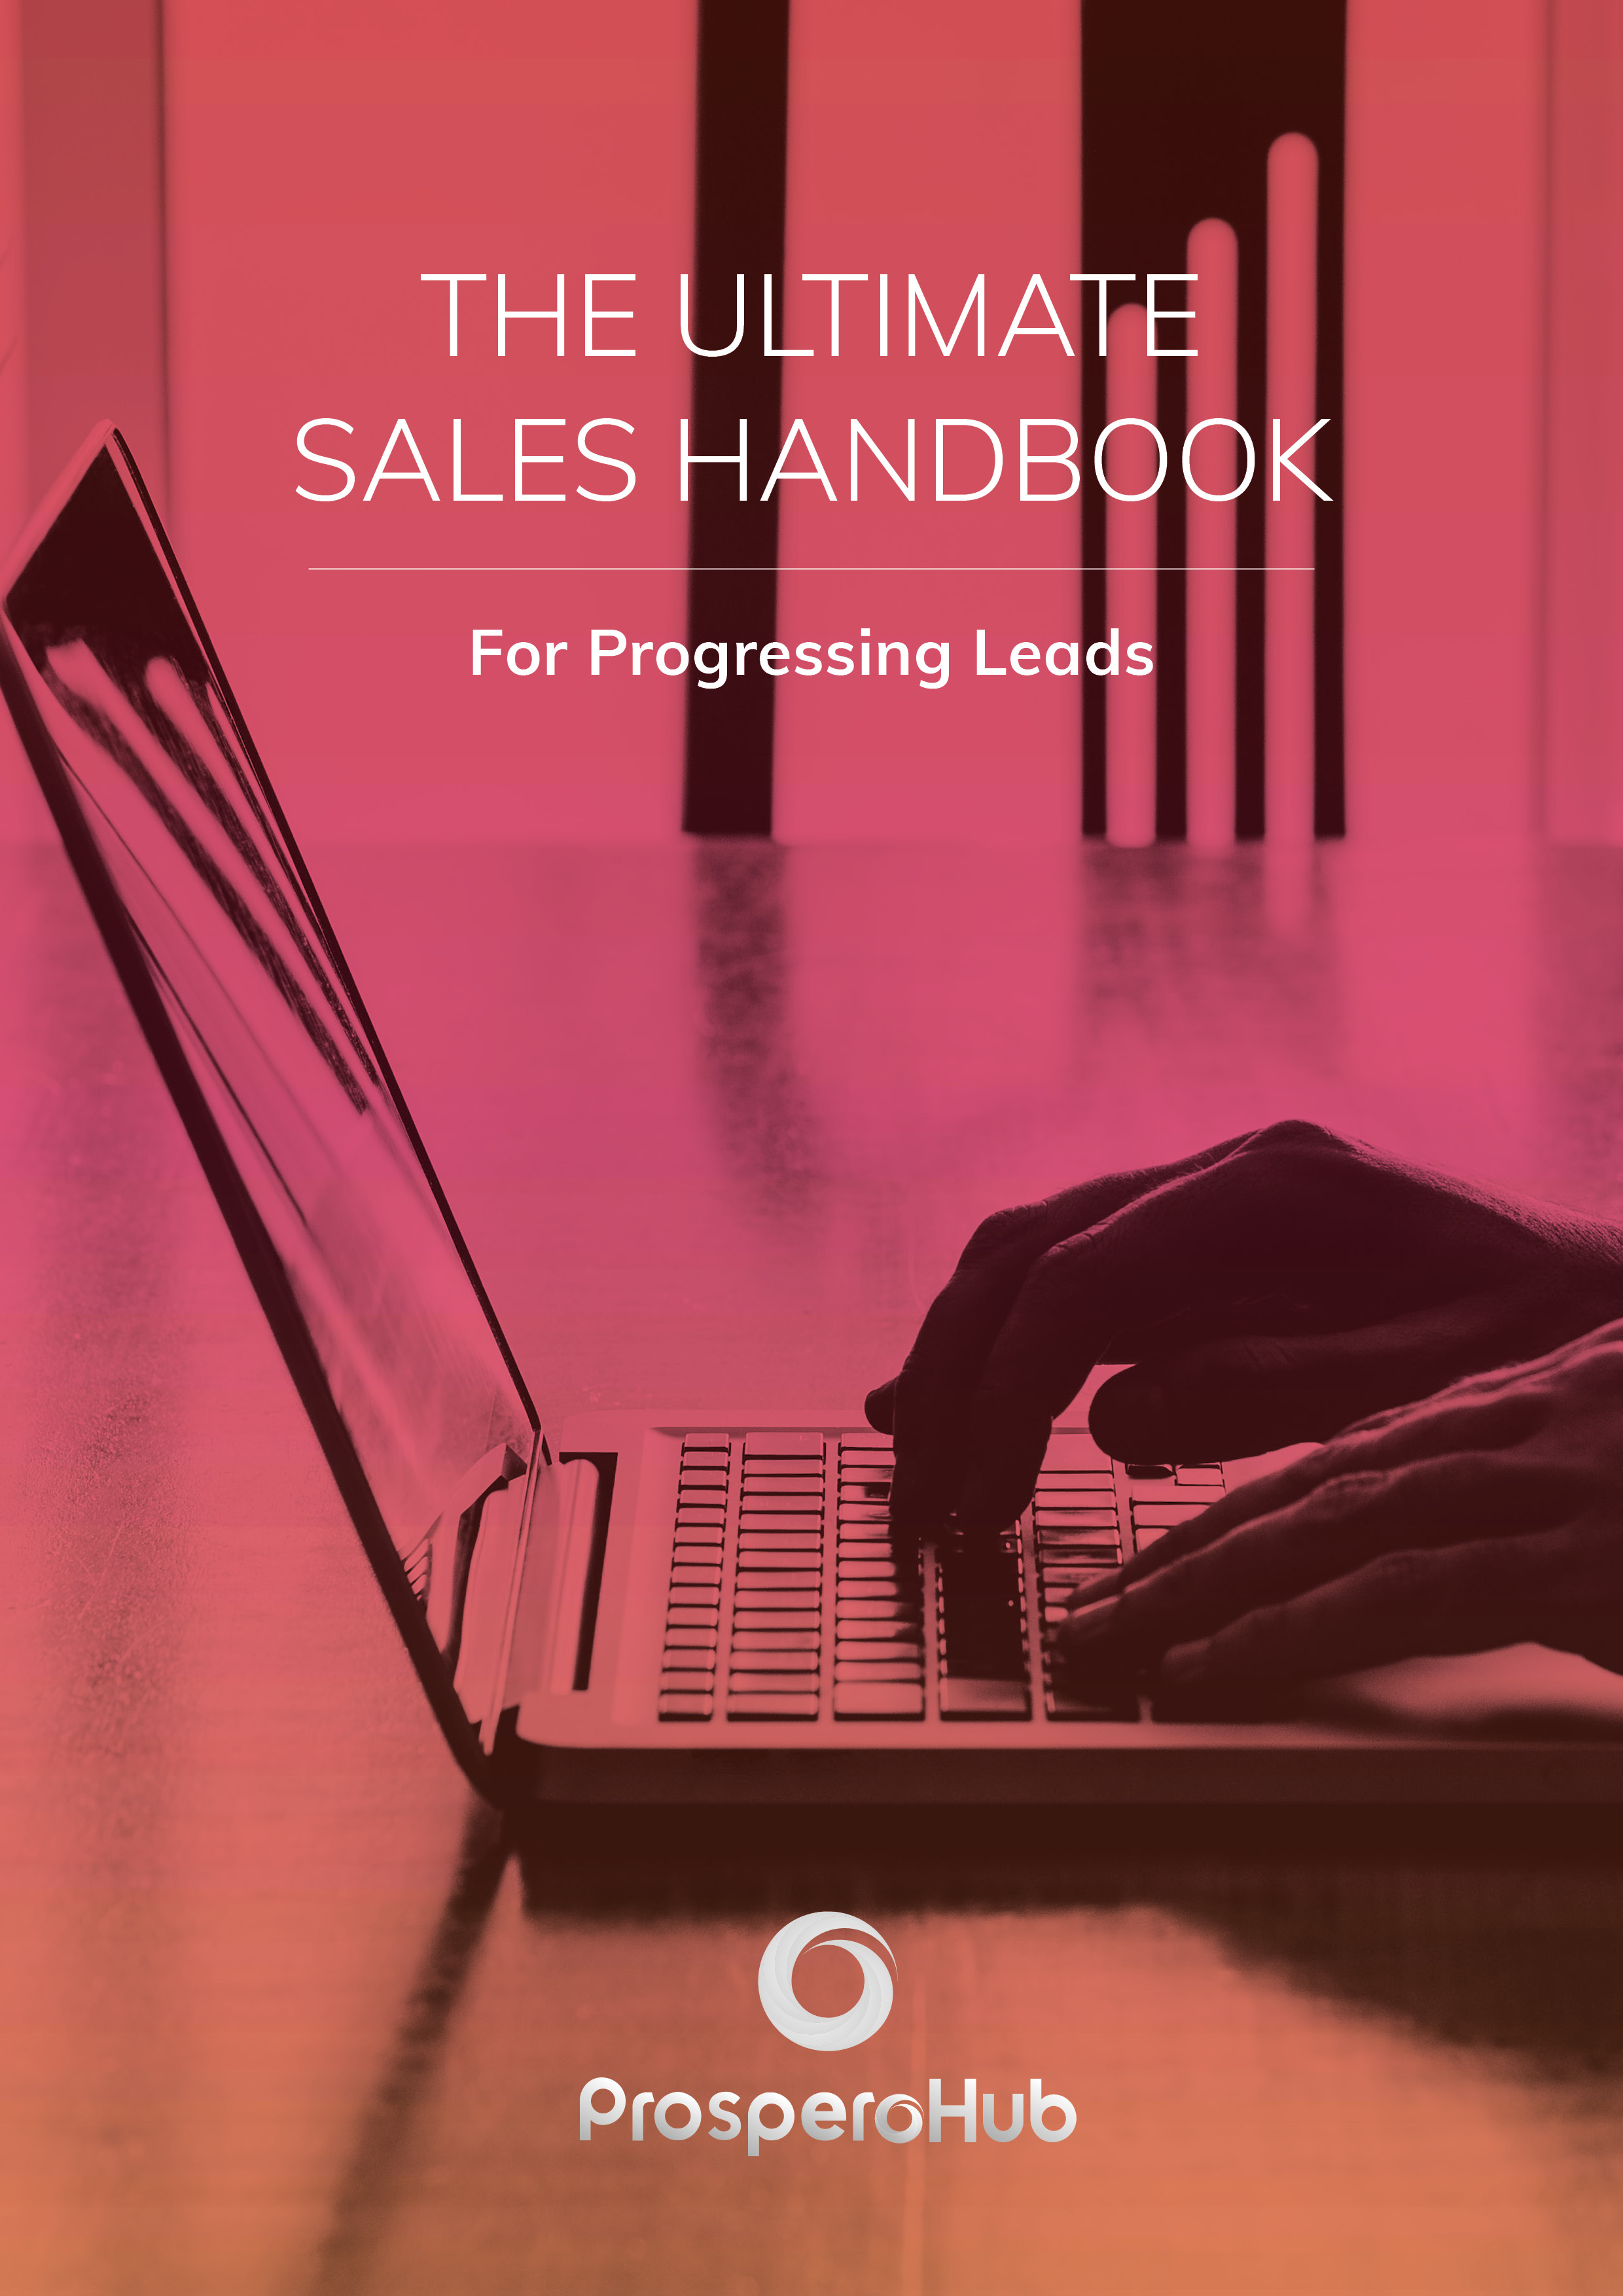 ProsperoHub - The Ultimate Sales Handbook for Progressing Leads - Cover